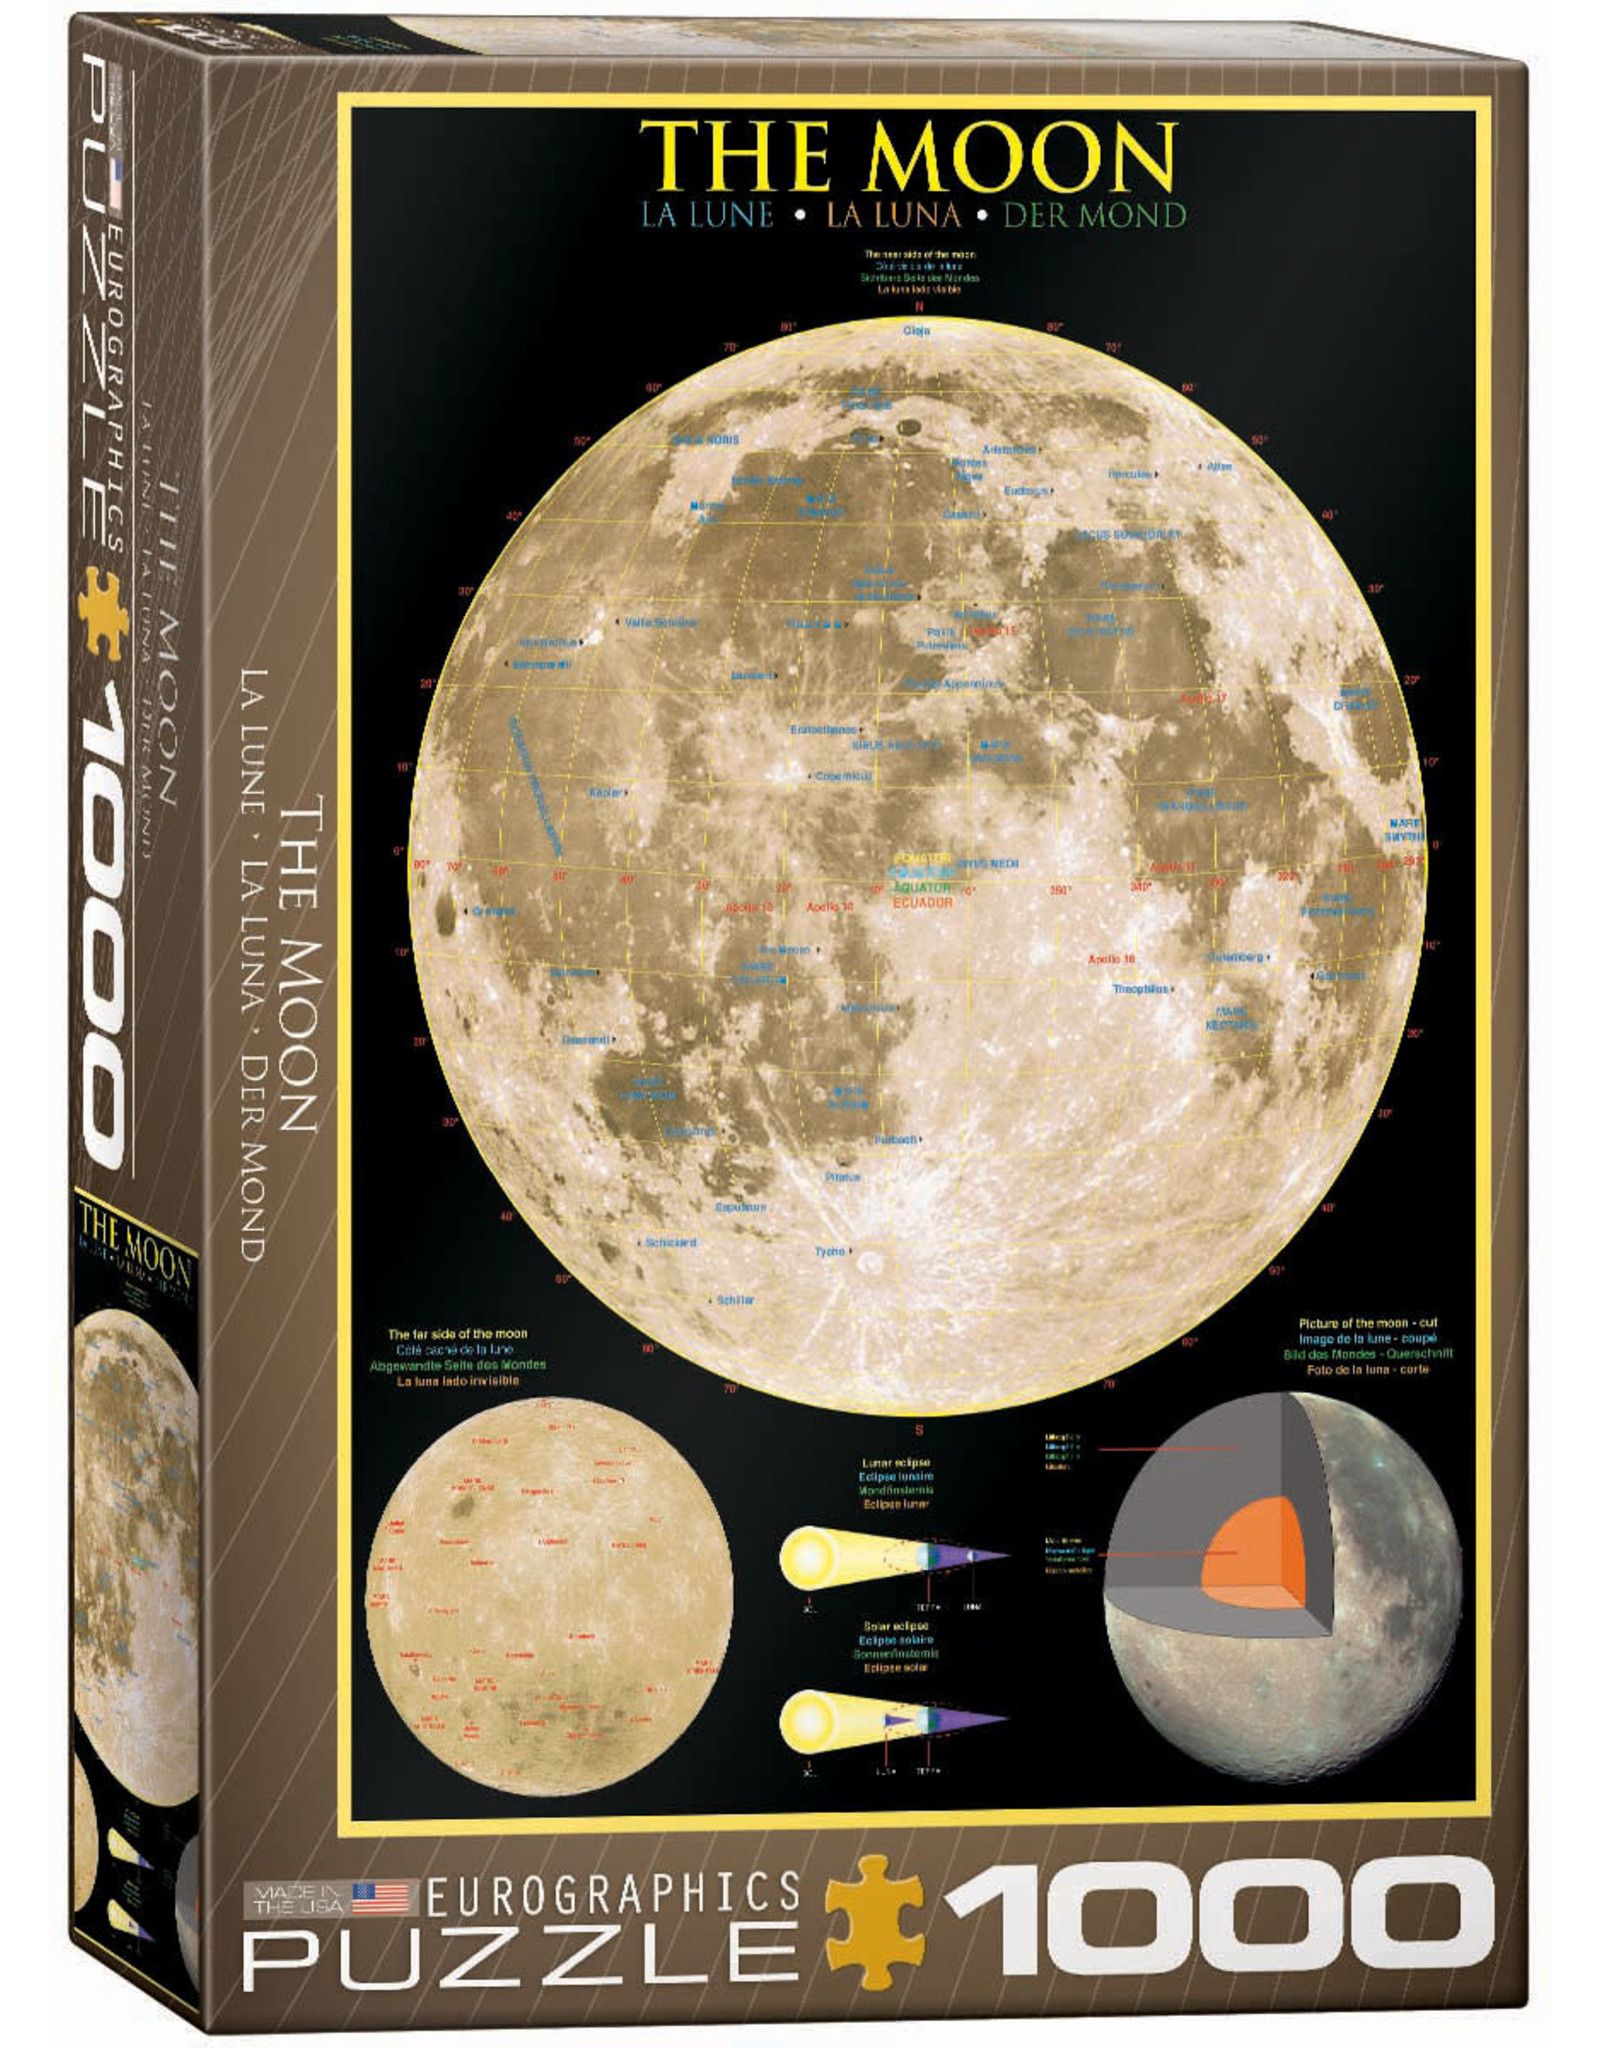 THE MOON 1000 PIECE PUZZLE